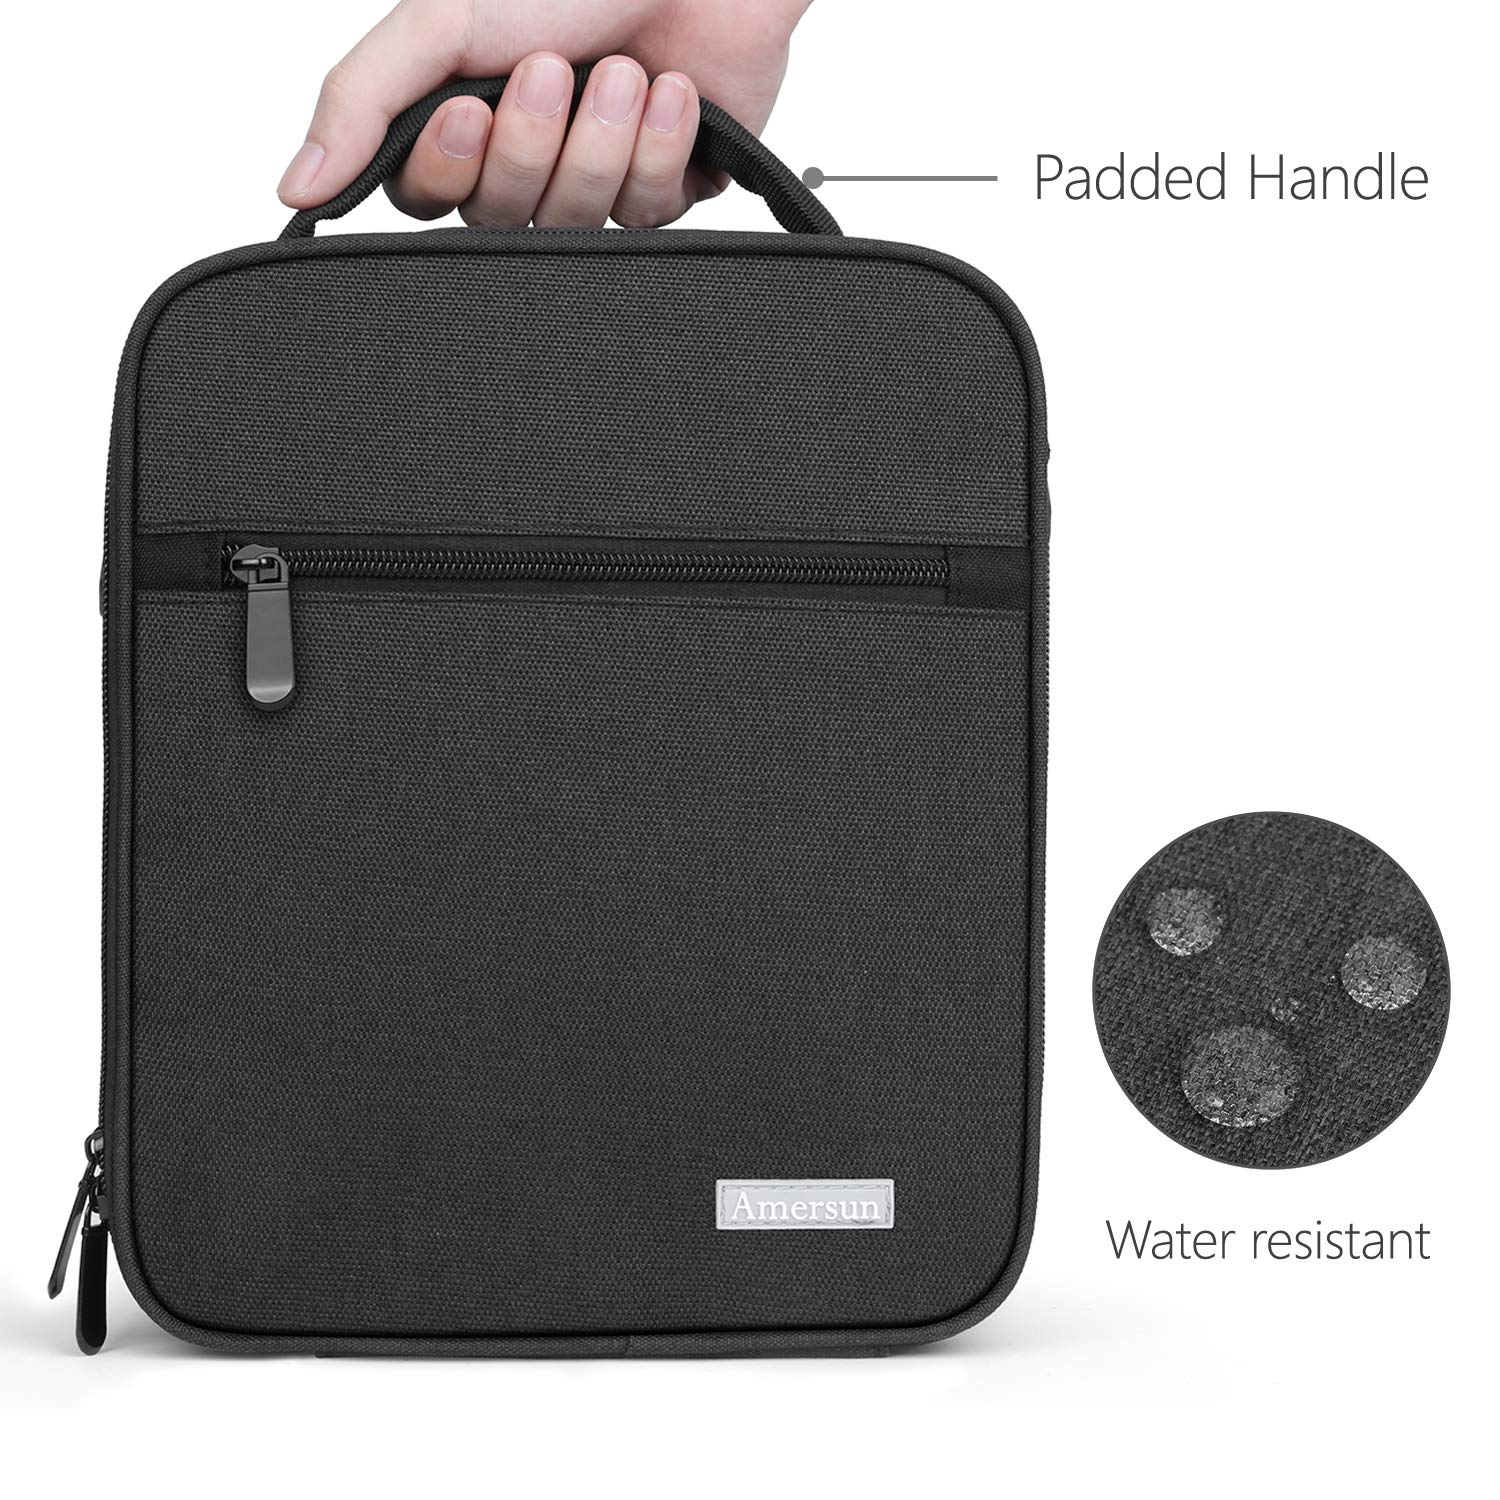 Lunch Bag with Firm Foil-BPA FREE, Amersun Original Reusable Insulated Lunch Box School Cooler Picnic Holder with Shoulder Strap for Kids Boys Men Women Girls,Spill-resistant & 2 Pockets (Black) by Amersun (Image #3)